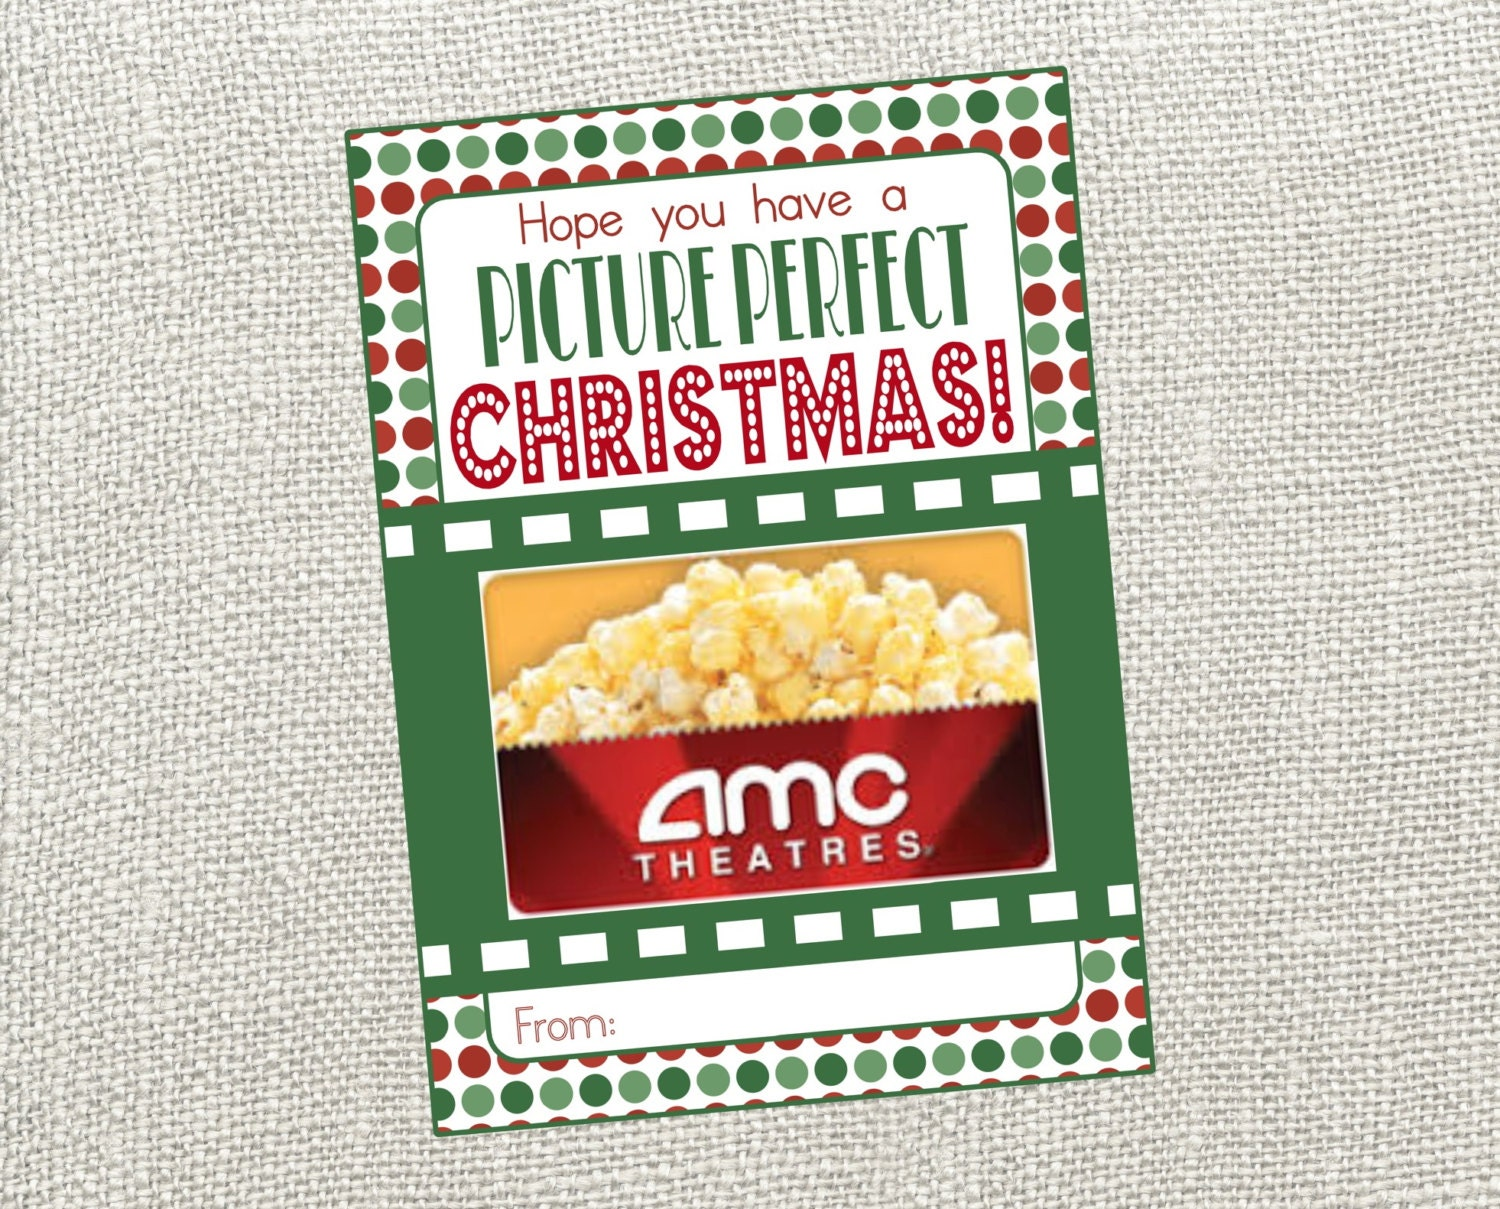 picture perfect christmas card perfect card for movie gift